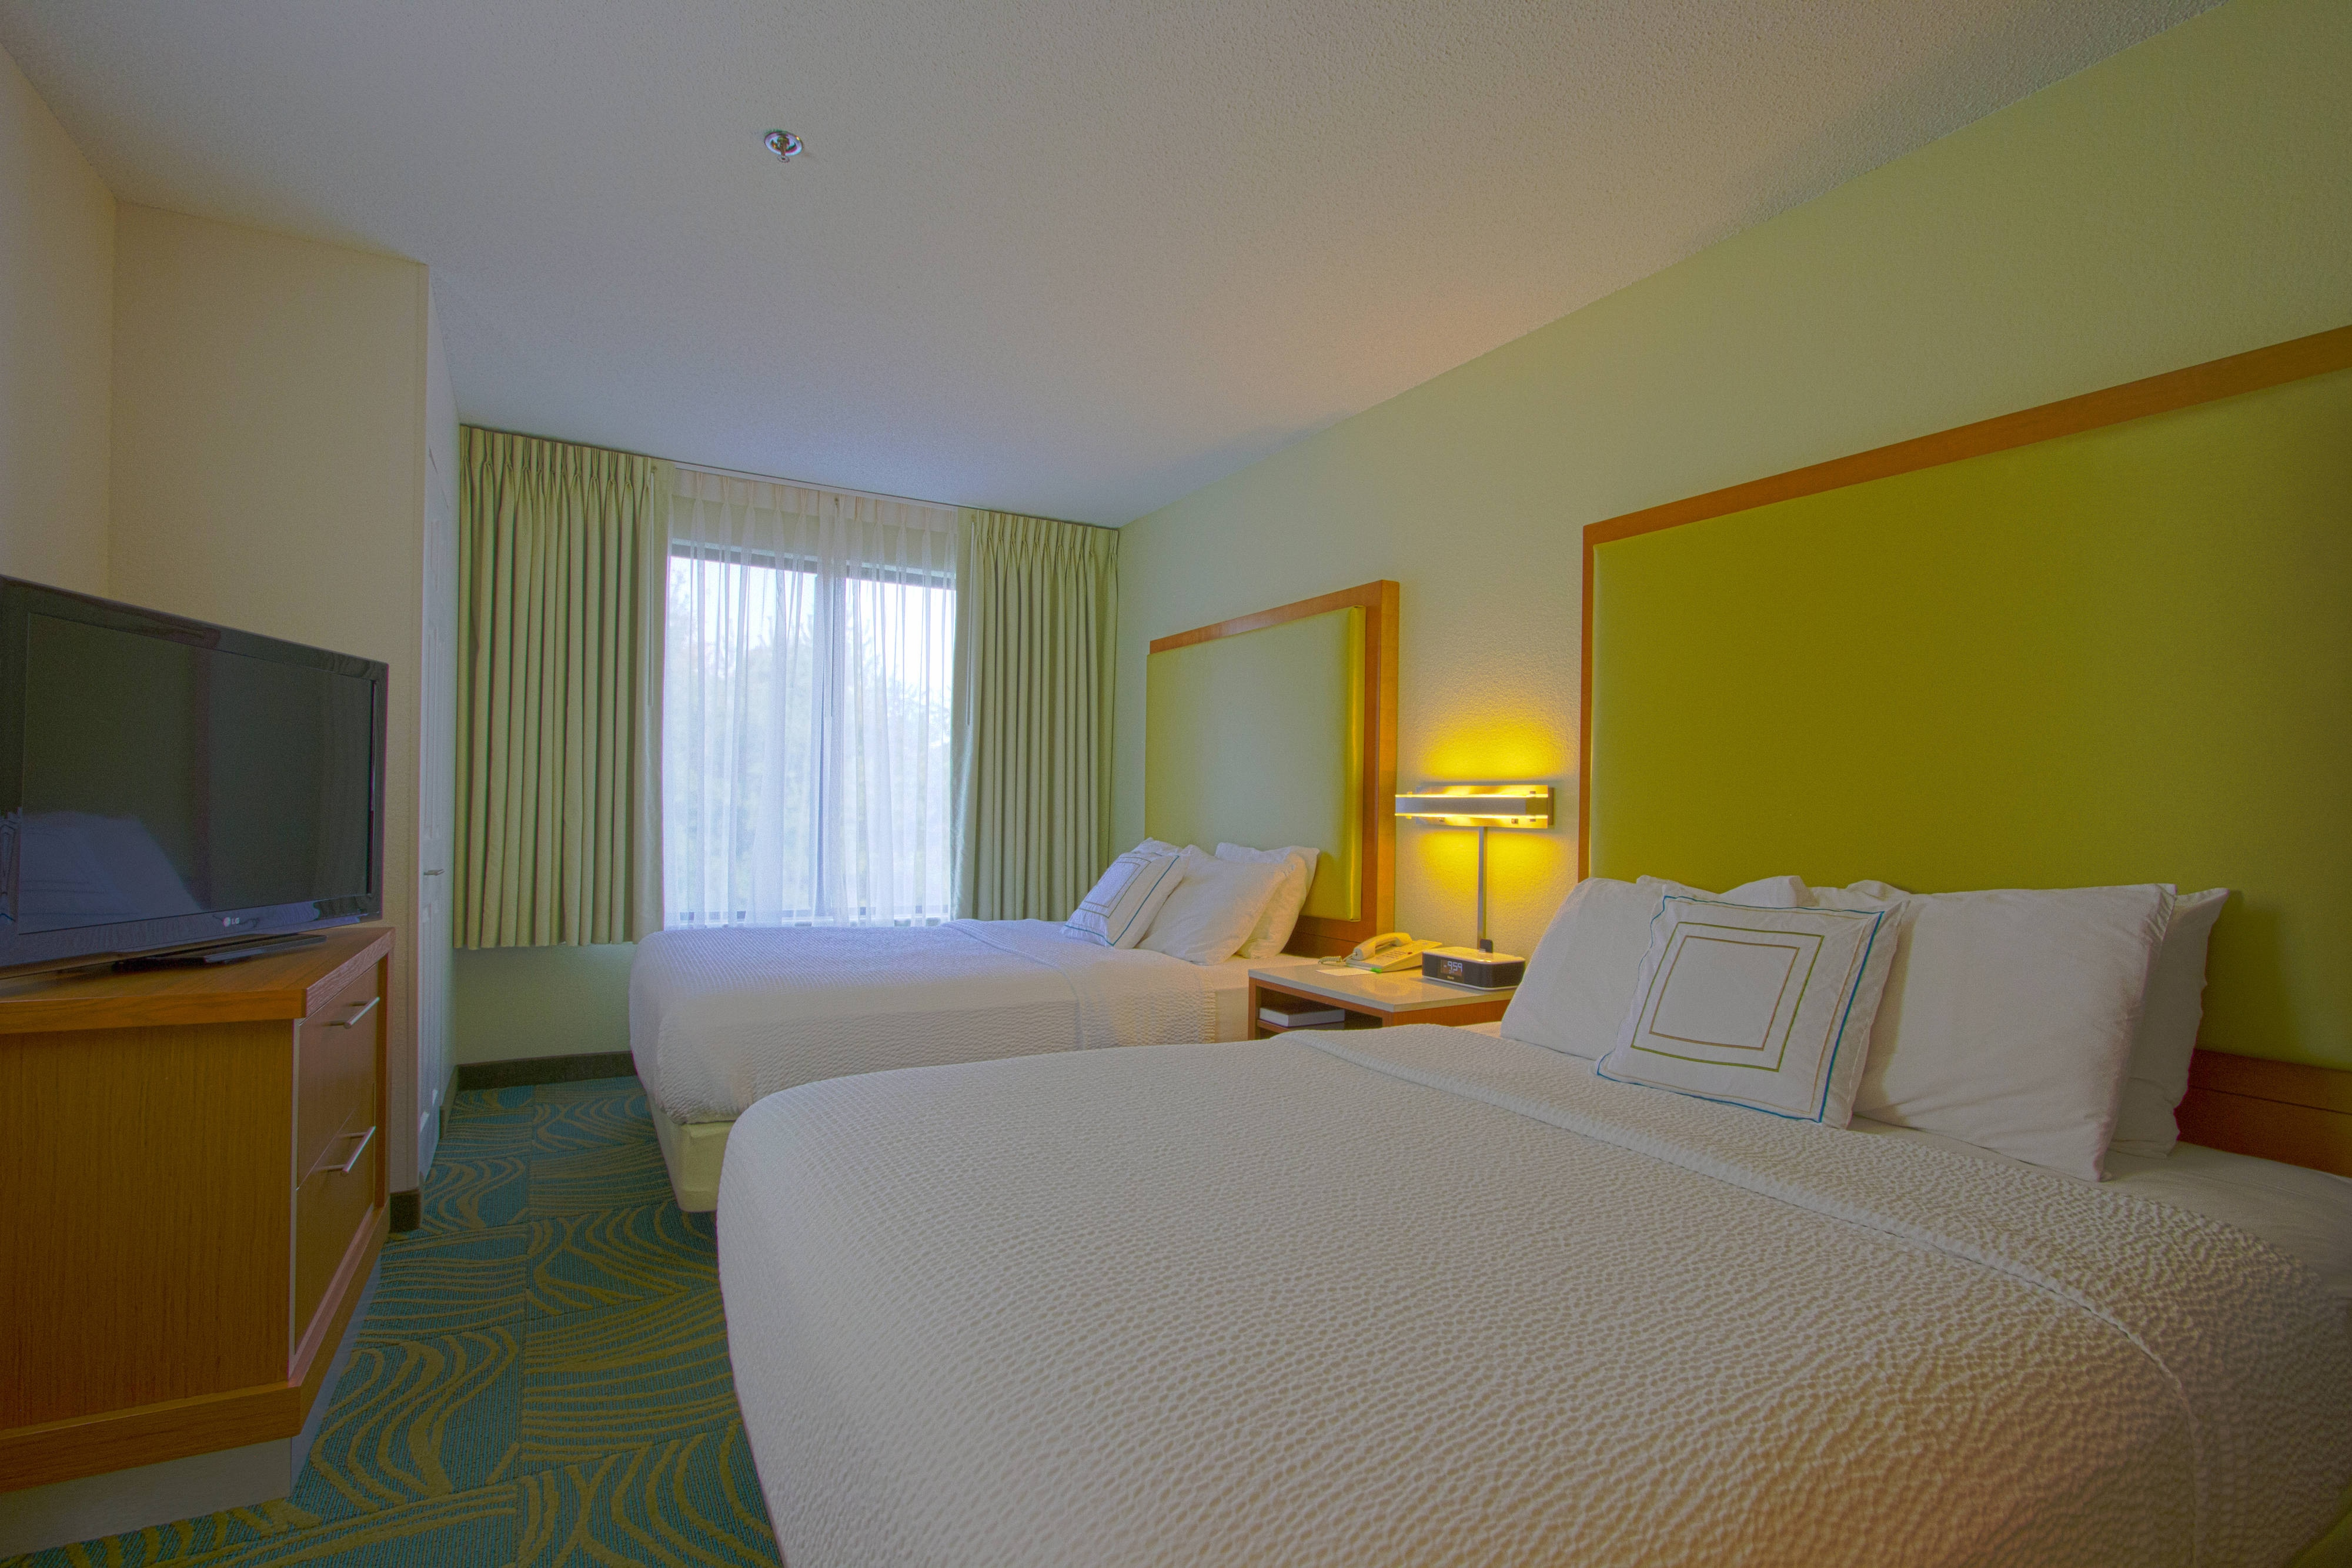 Hotel Rooms Amp Amenities Springhill Suites Hershey Near